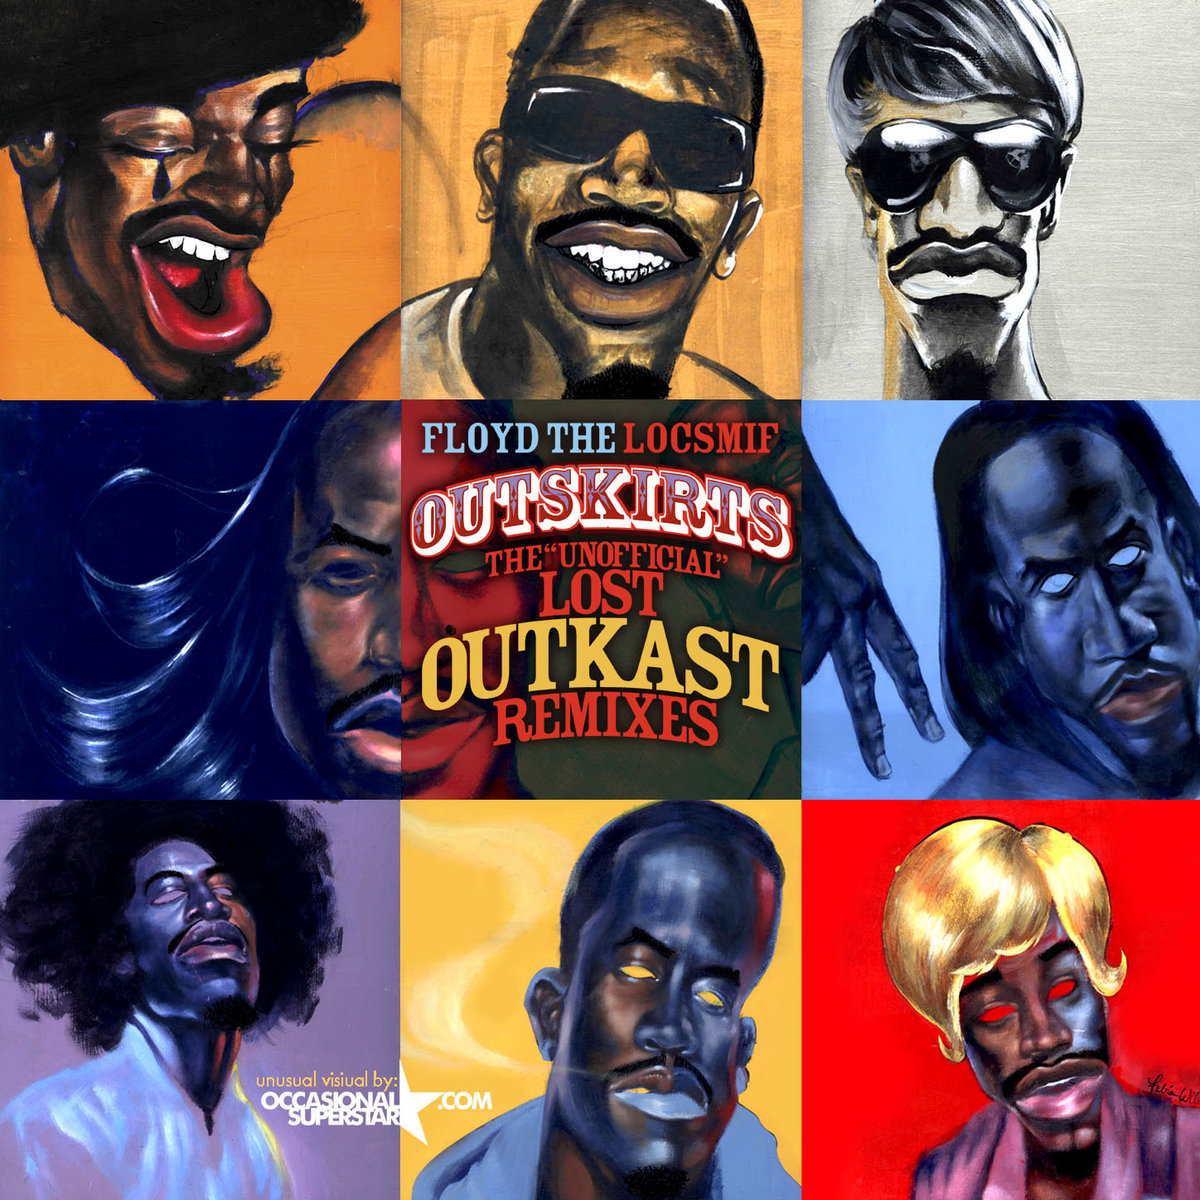 Outskirts: The Unofficial Lost Outkast Remixes | Floyd The